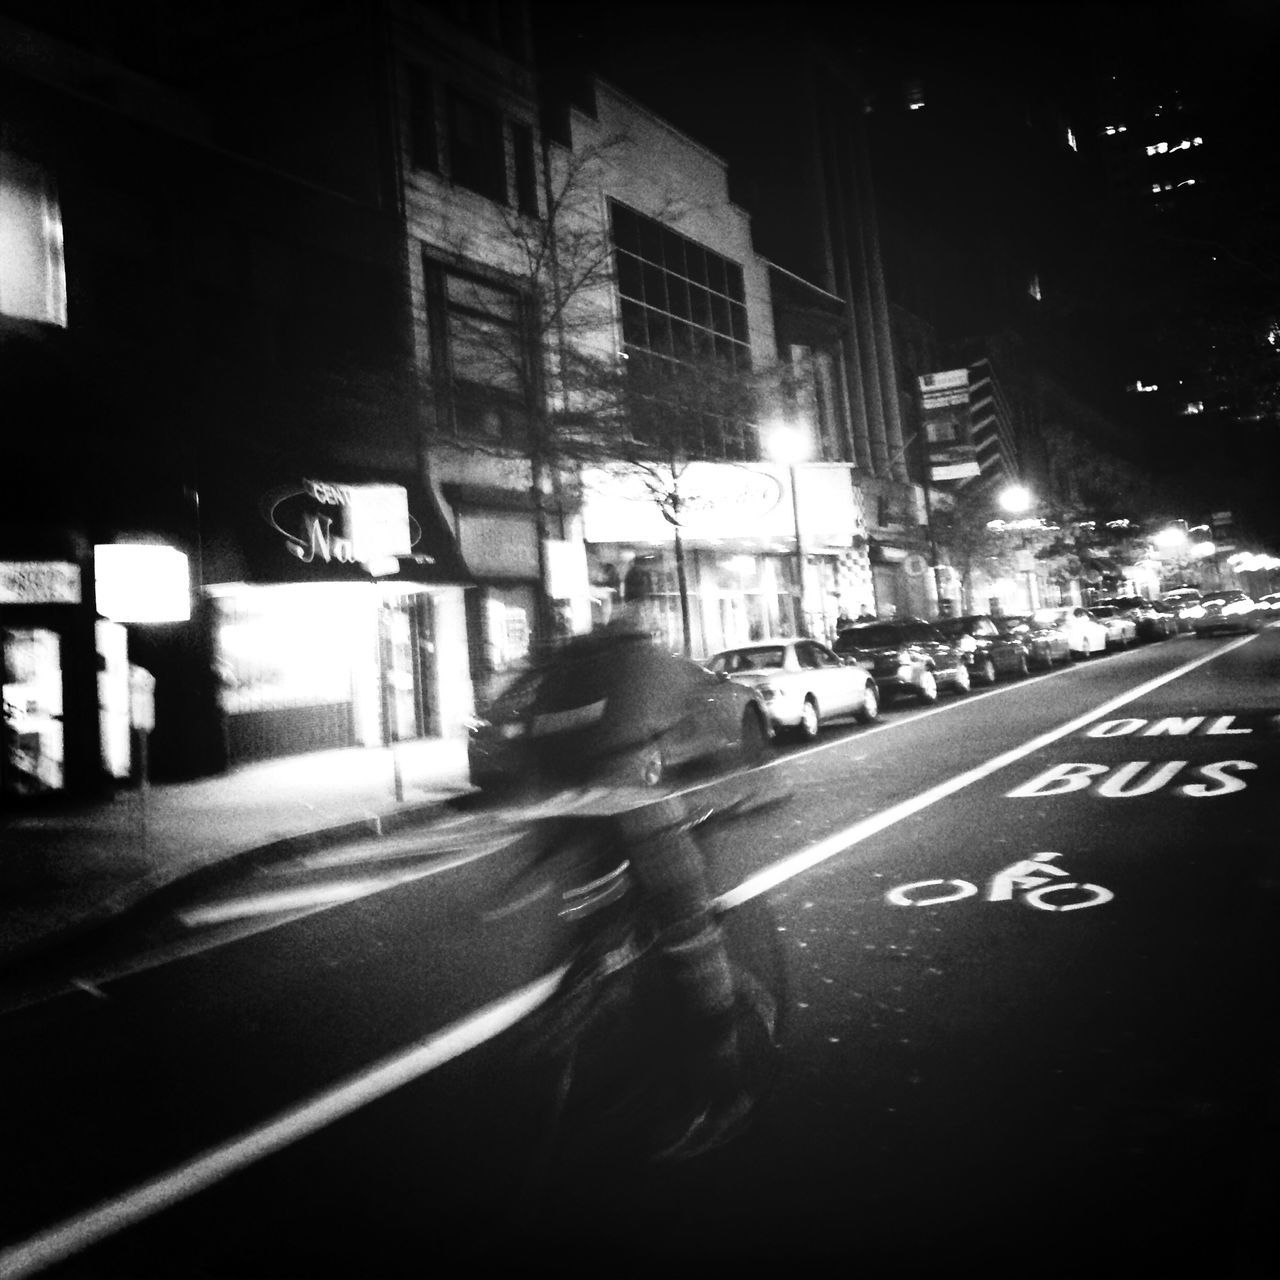 Rear view of a blurred man bicycling on road at night